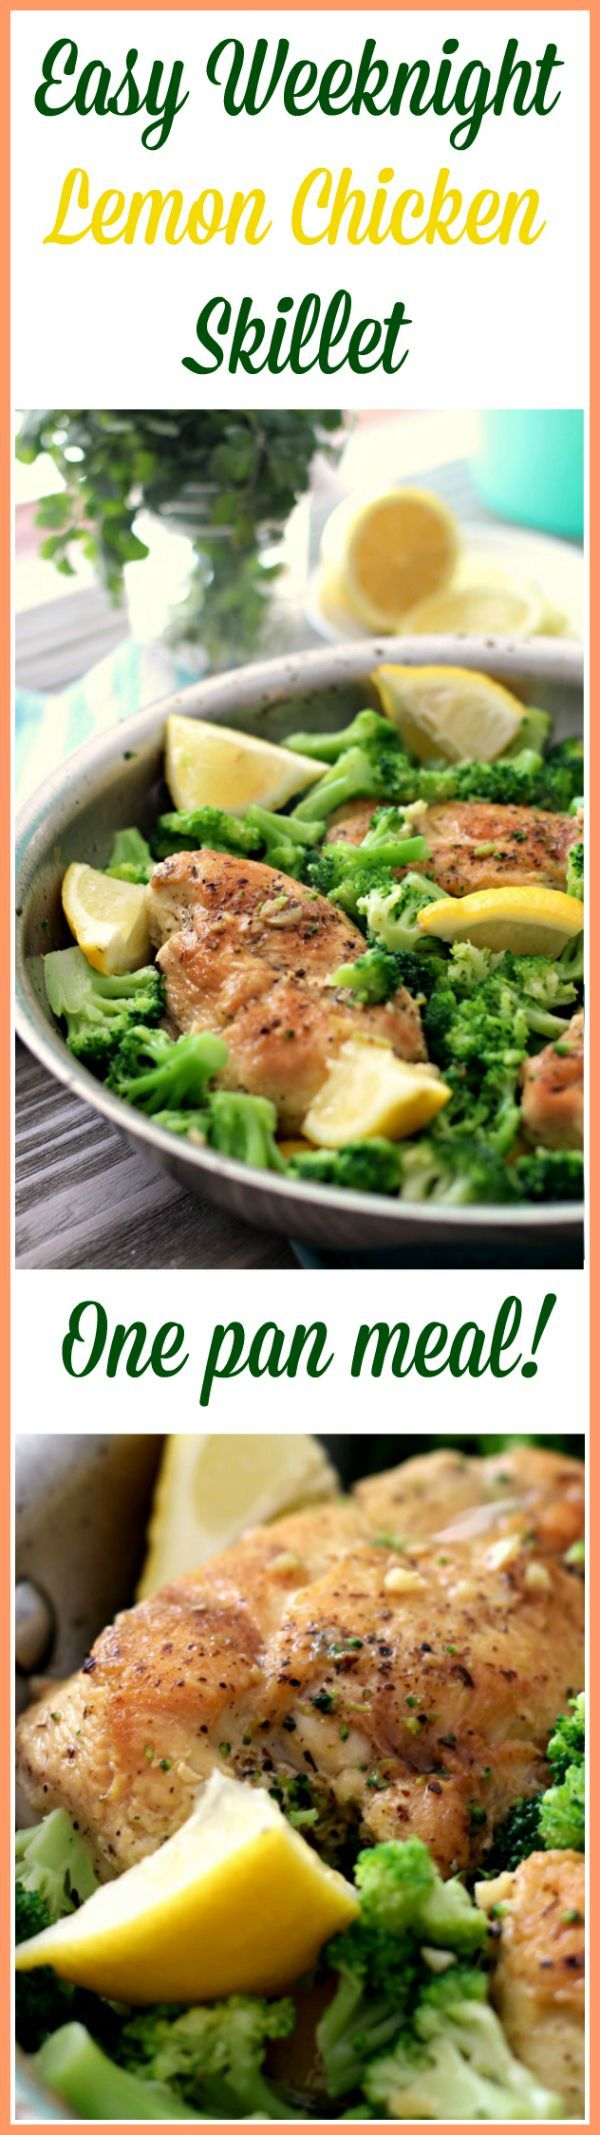 Lemon Chicken Skillet - One pan meal! Paleo, Gluten Free, Whole30